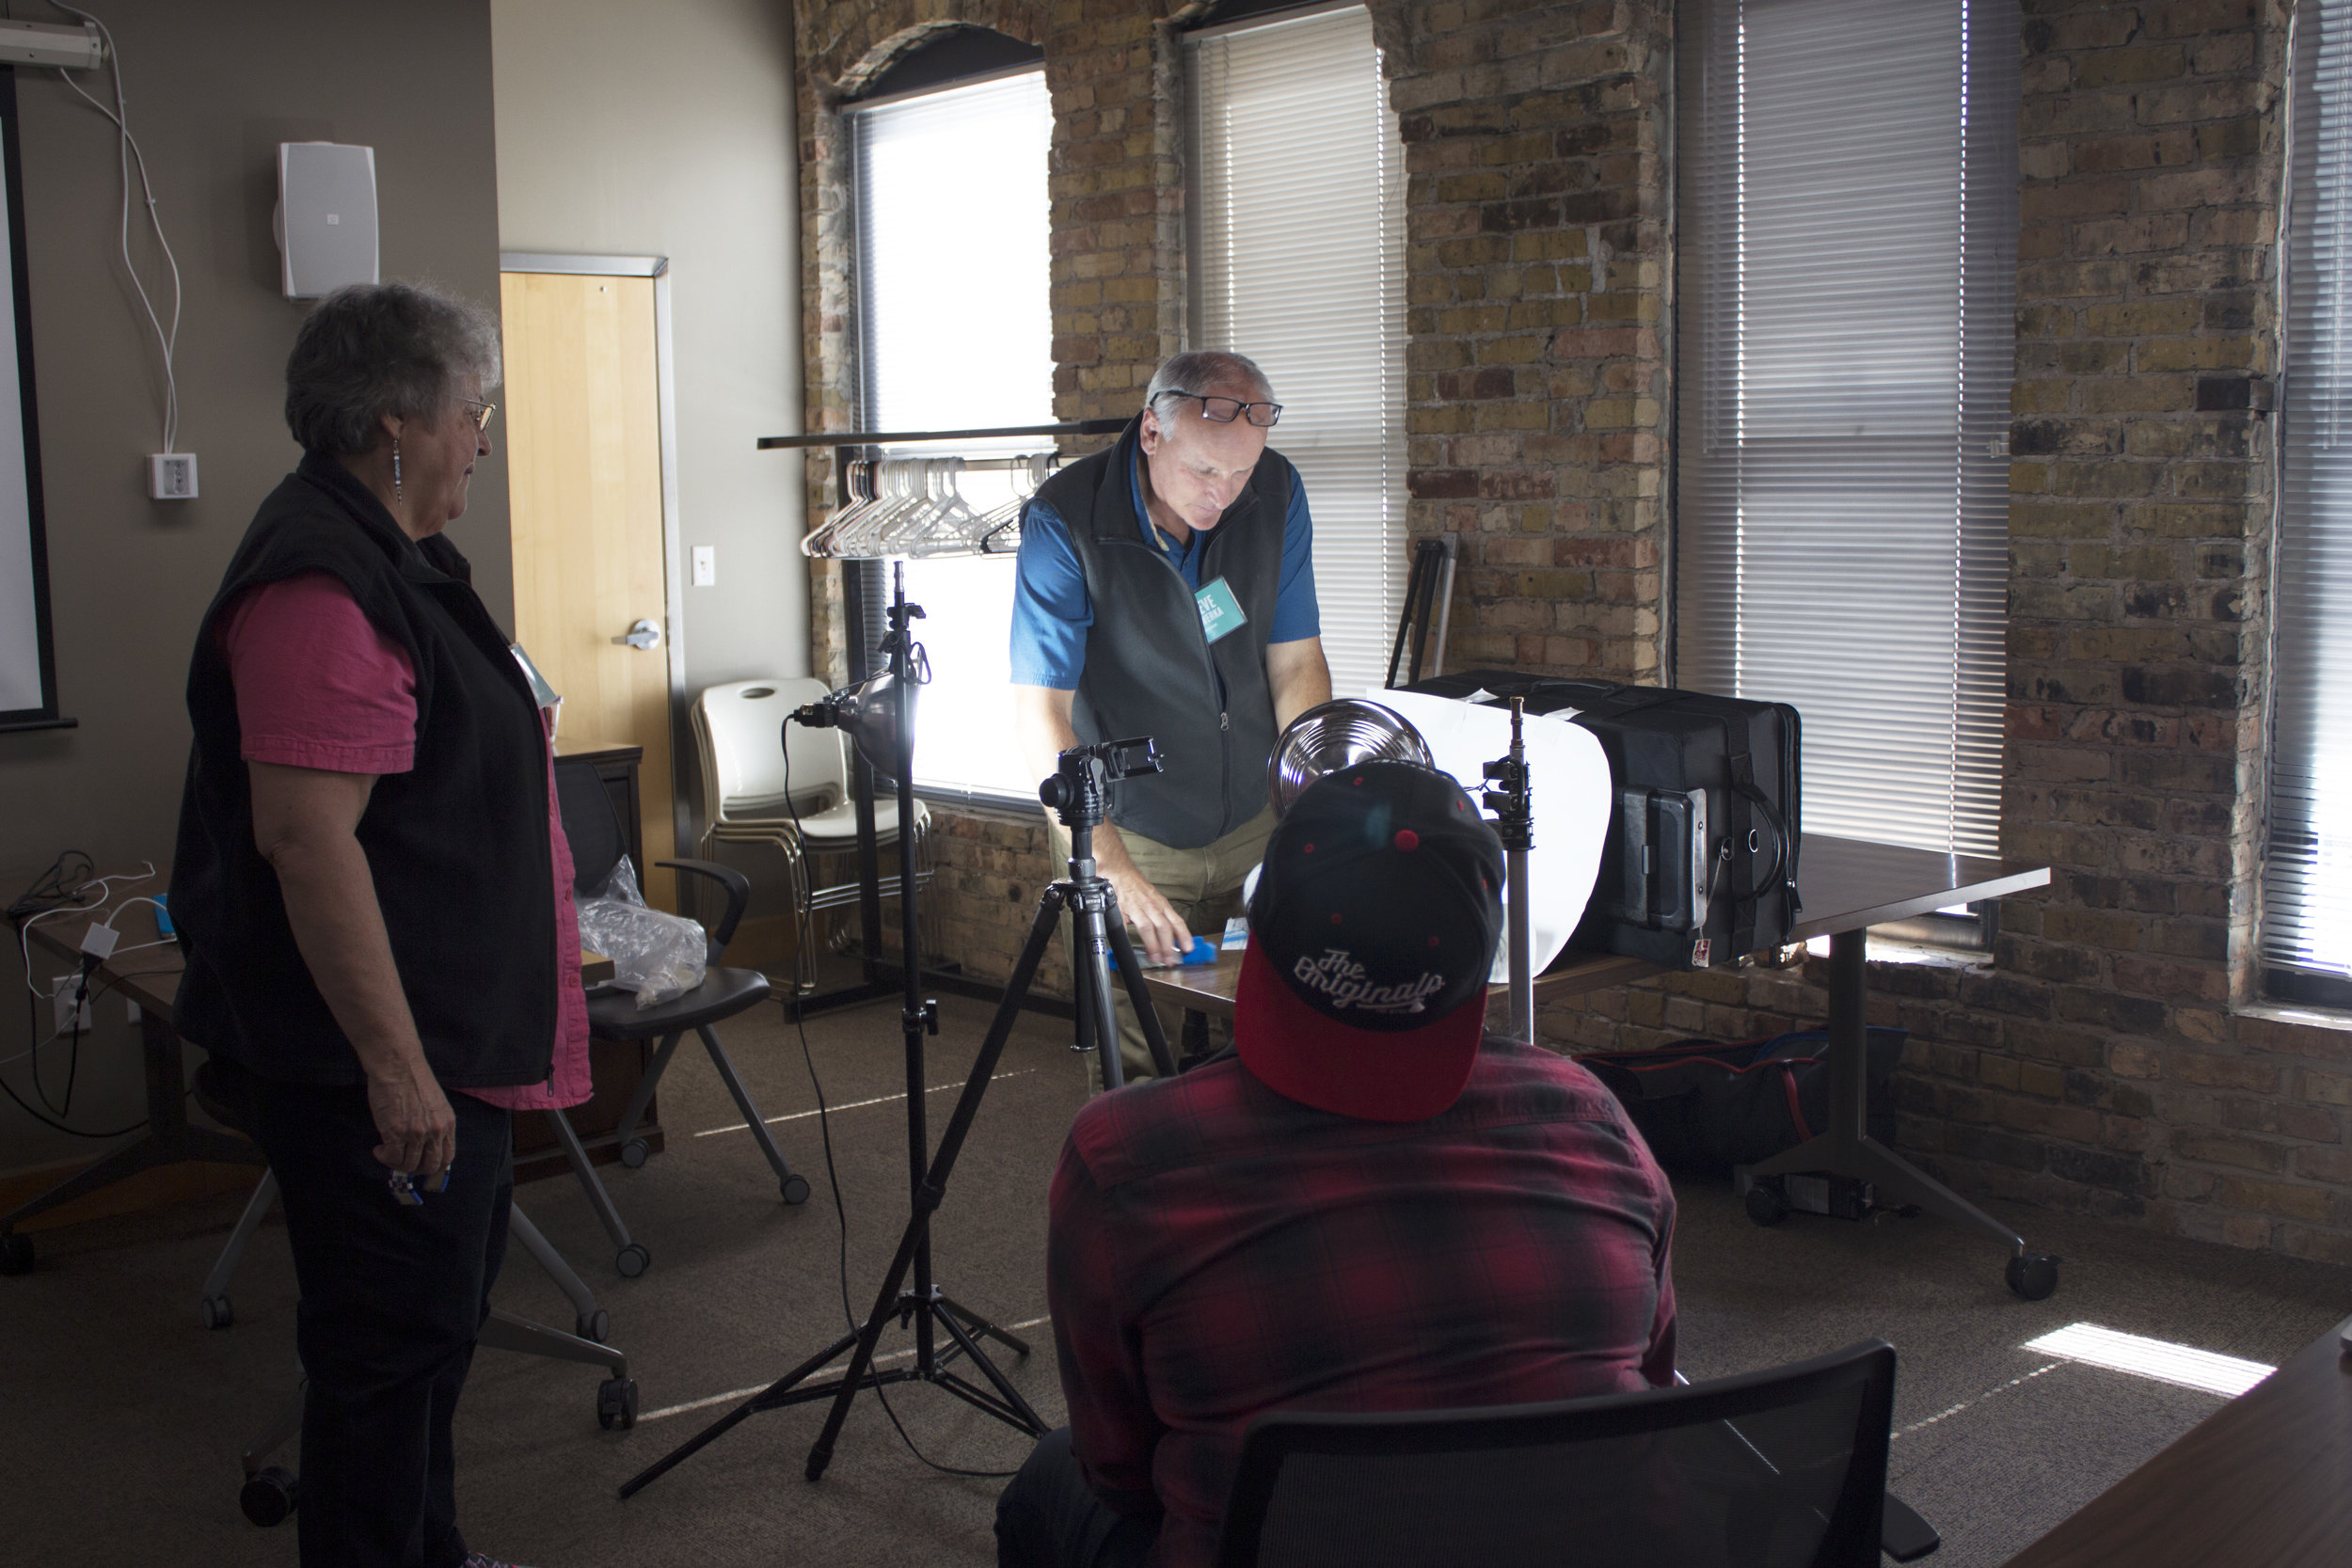 Steve Wewerka instructing fellows on photography lighting techniques.